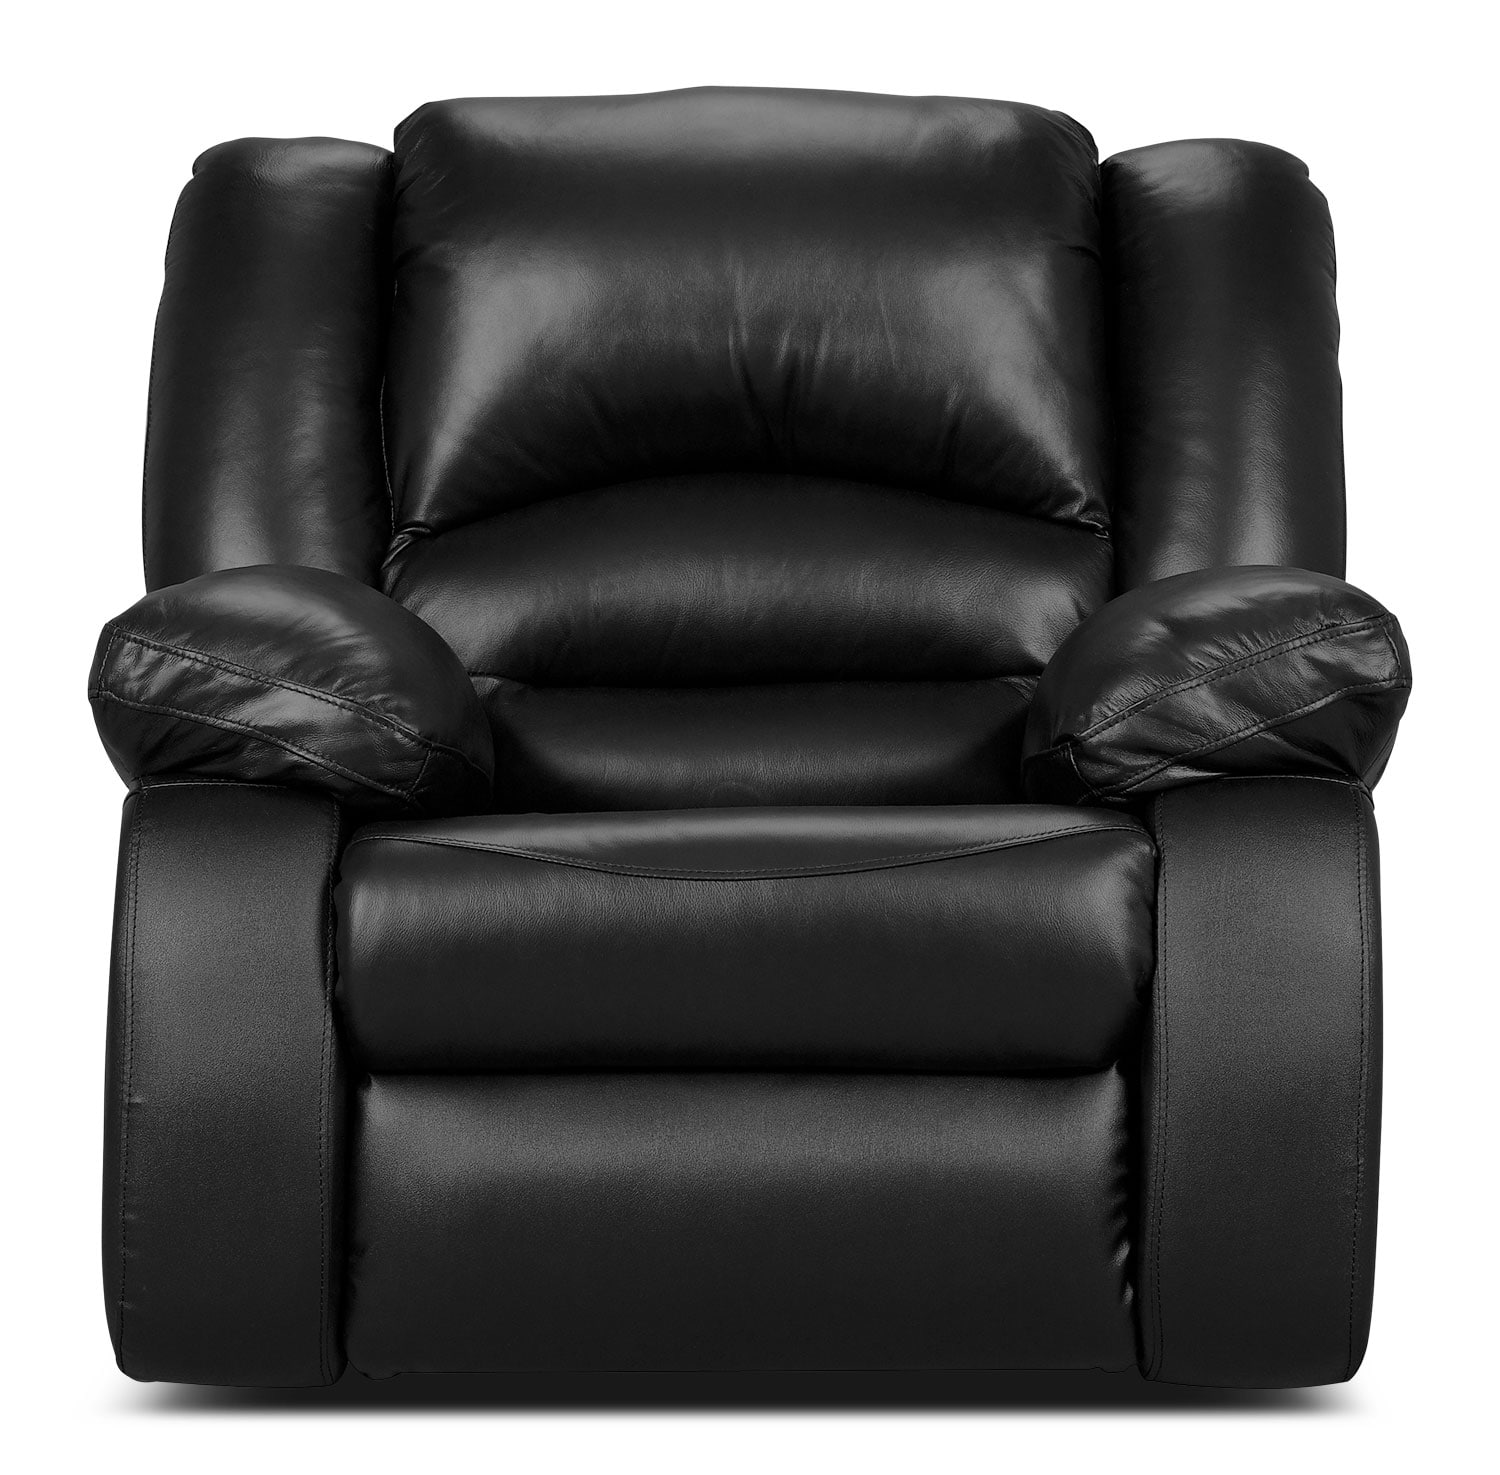 Living Room Furniture - Toreno Black Genuine Leather Reclining Chair